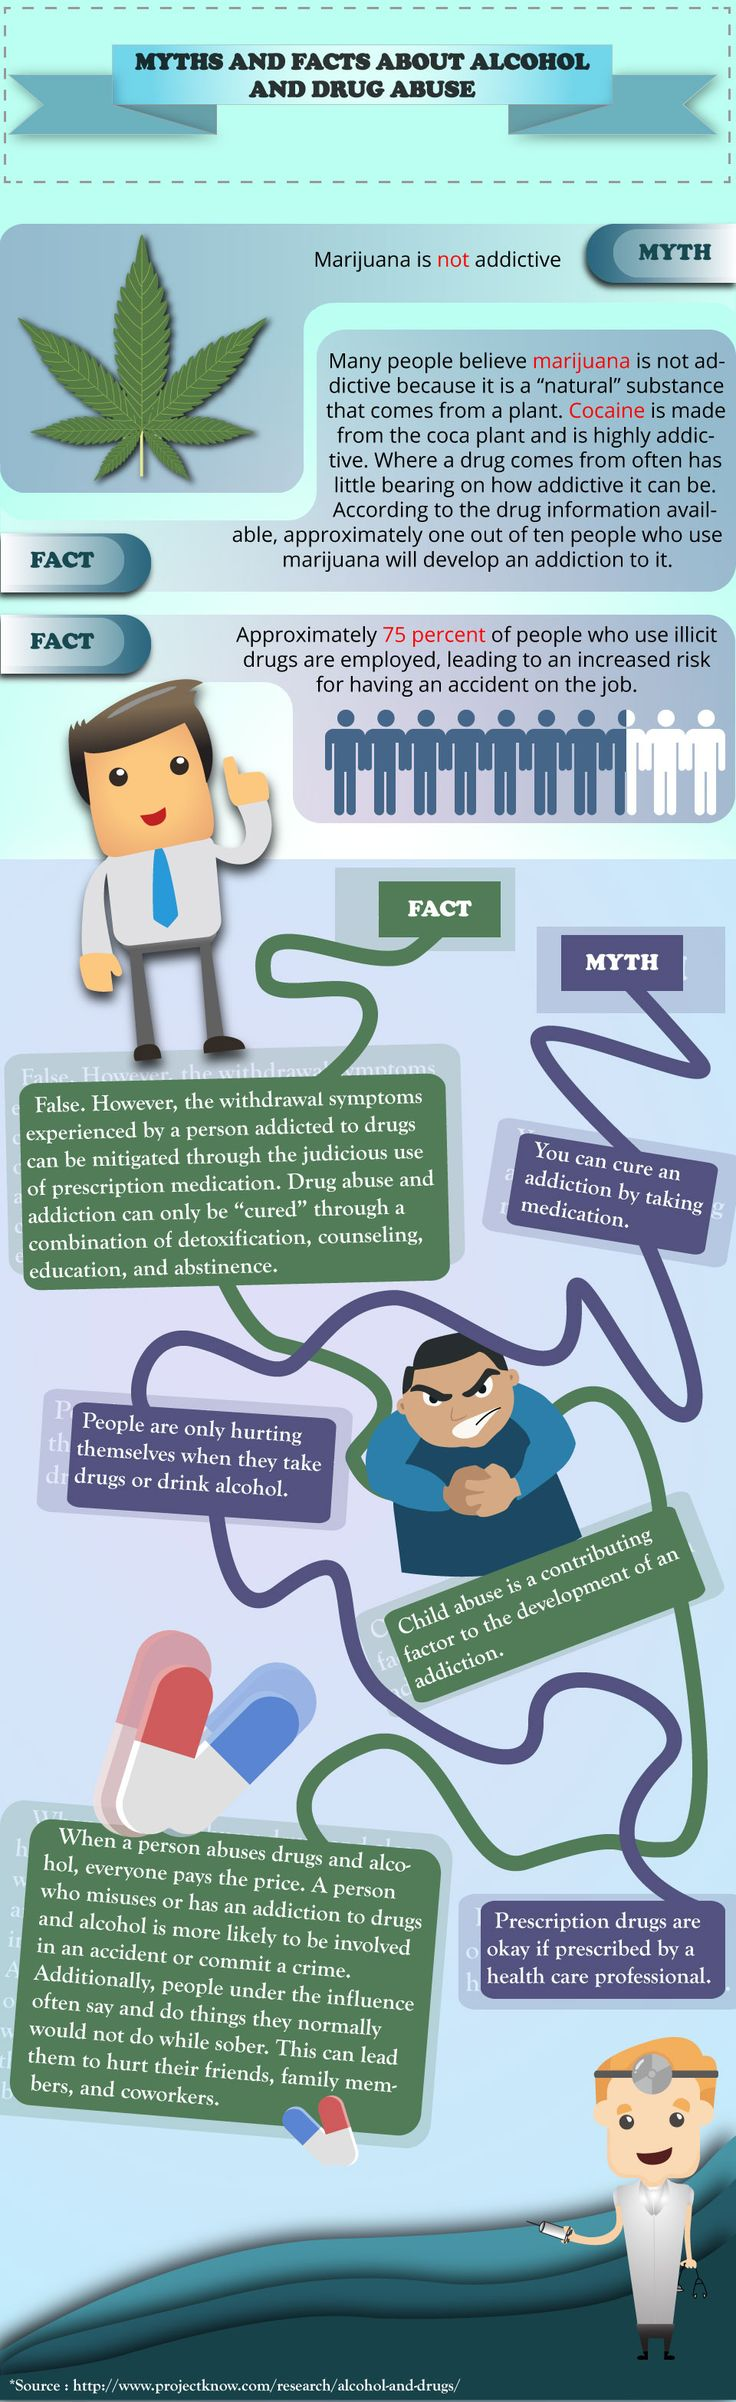 Infographic about Myths And Facts About Alcohol And Drug Abuse.